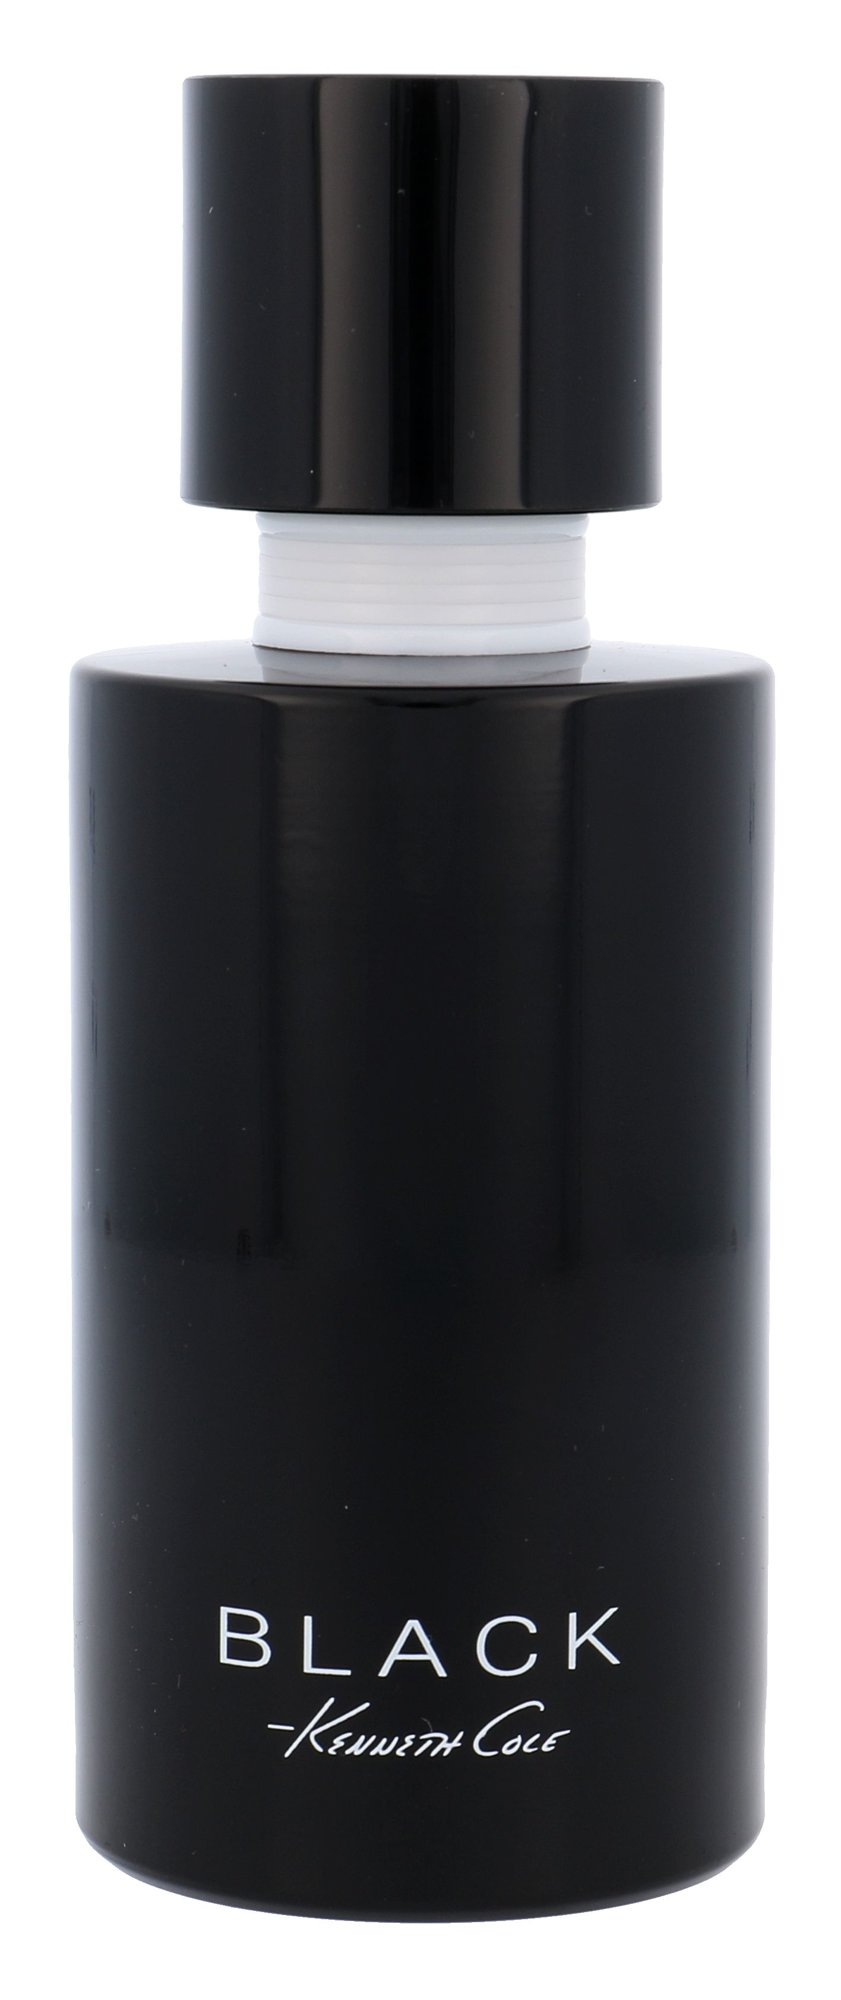 Kenneth Cole Black EDP 100ml